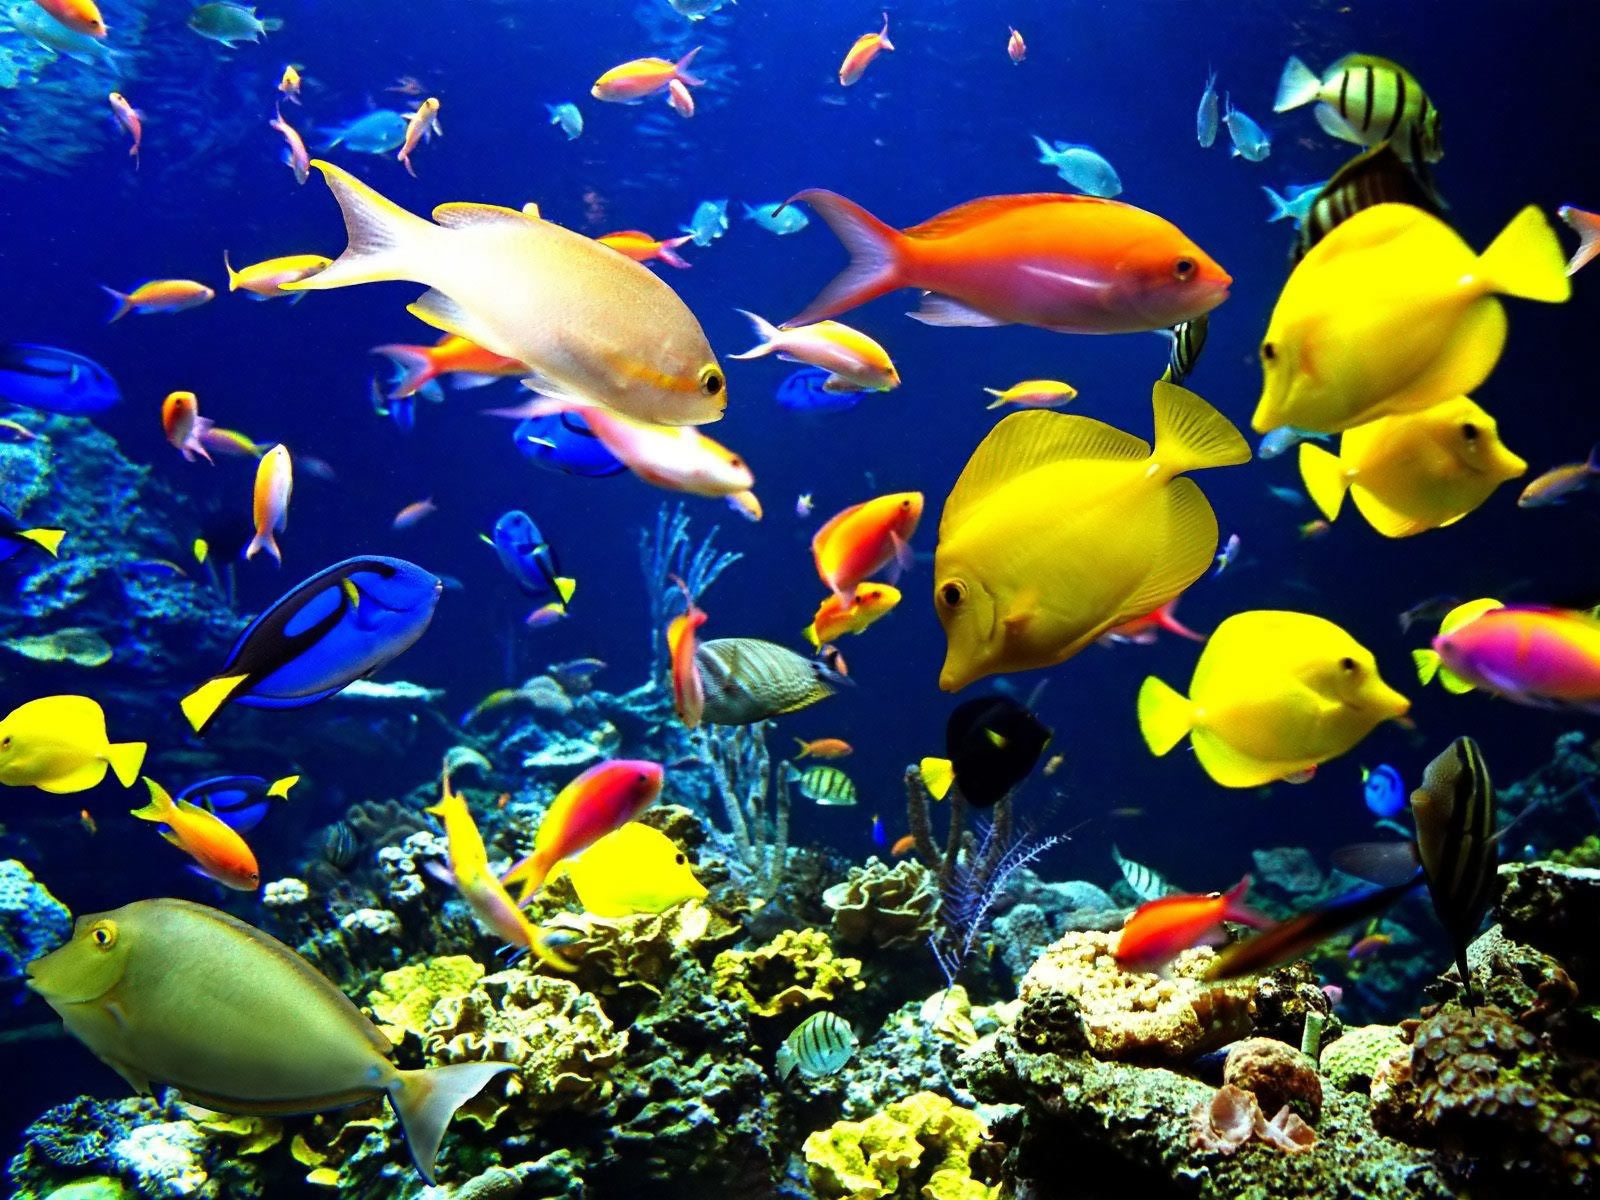 Download Wallpaper Aquarium Bergerak Untuk Windows 7